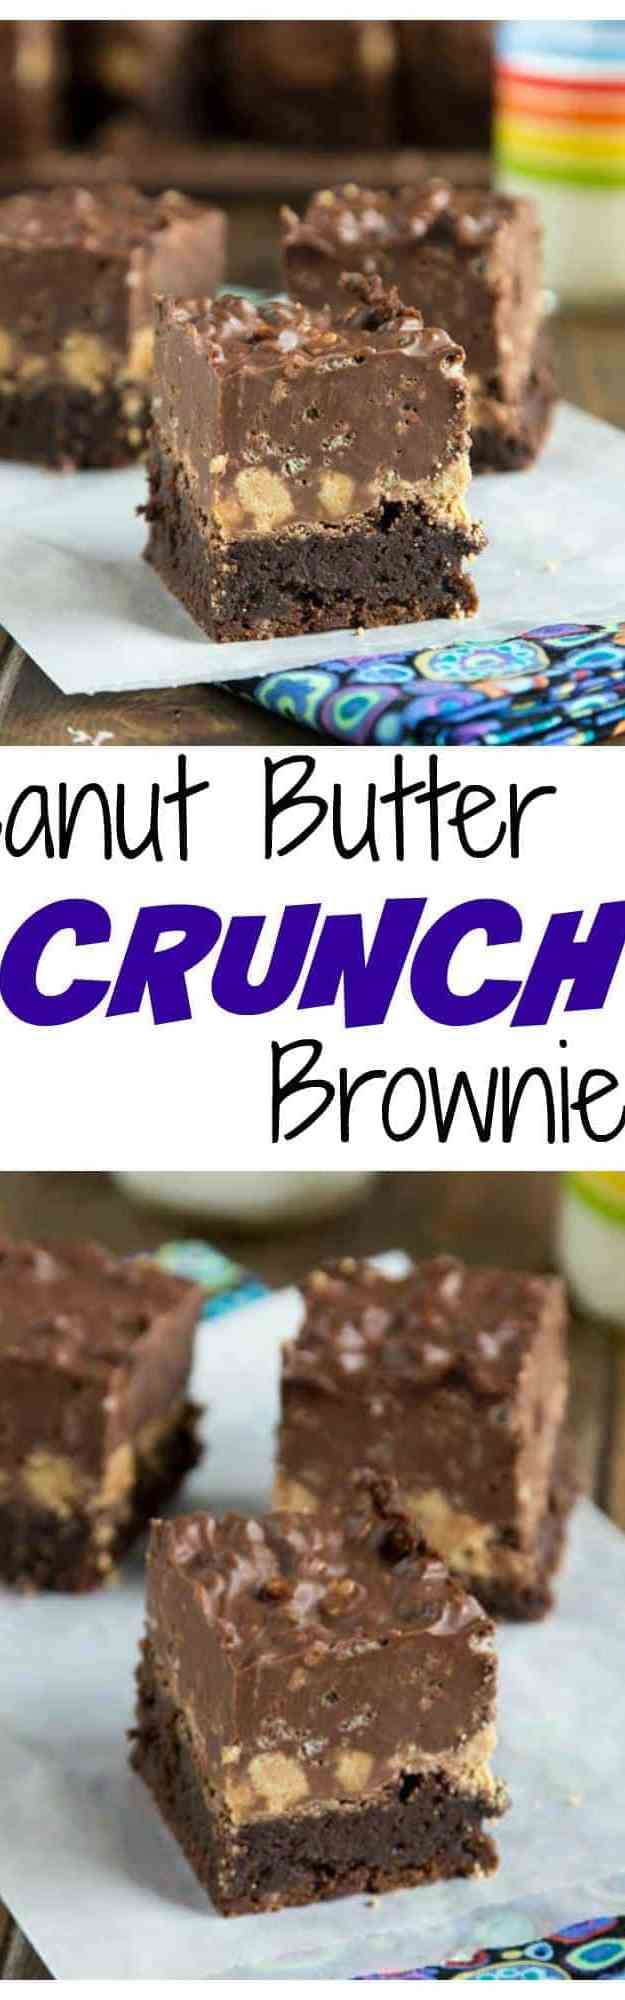 Peanut Butter Crunch Brownies -A fudgy brownie, topped with a layer of peanut butter cups, and then a layer of chocolate/peanut butter crispy fudge. Pure chocolate and peanut butter heaven!